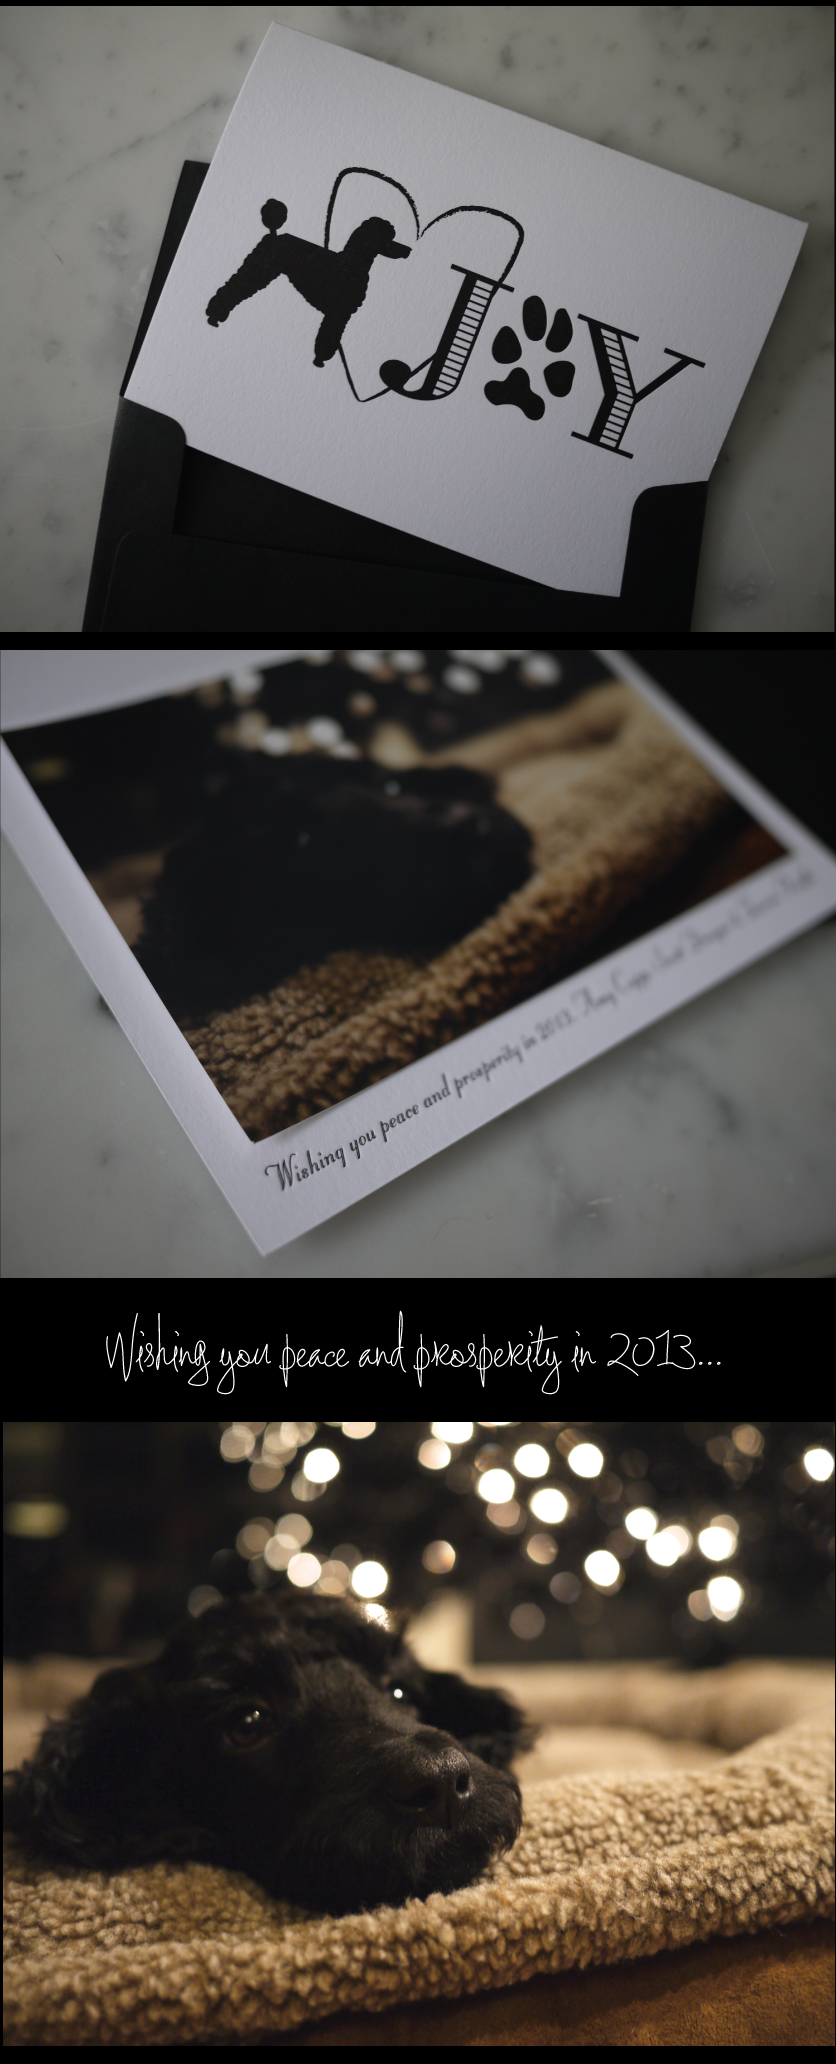 Wishing-you-peace-and-prosperity-in-2013